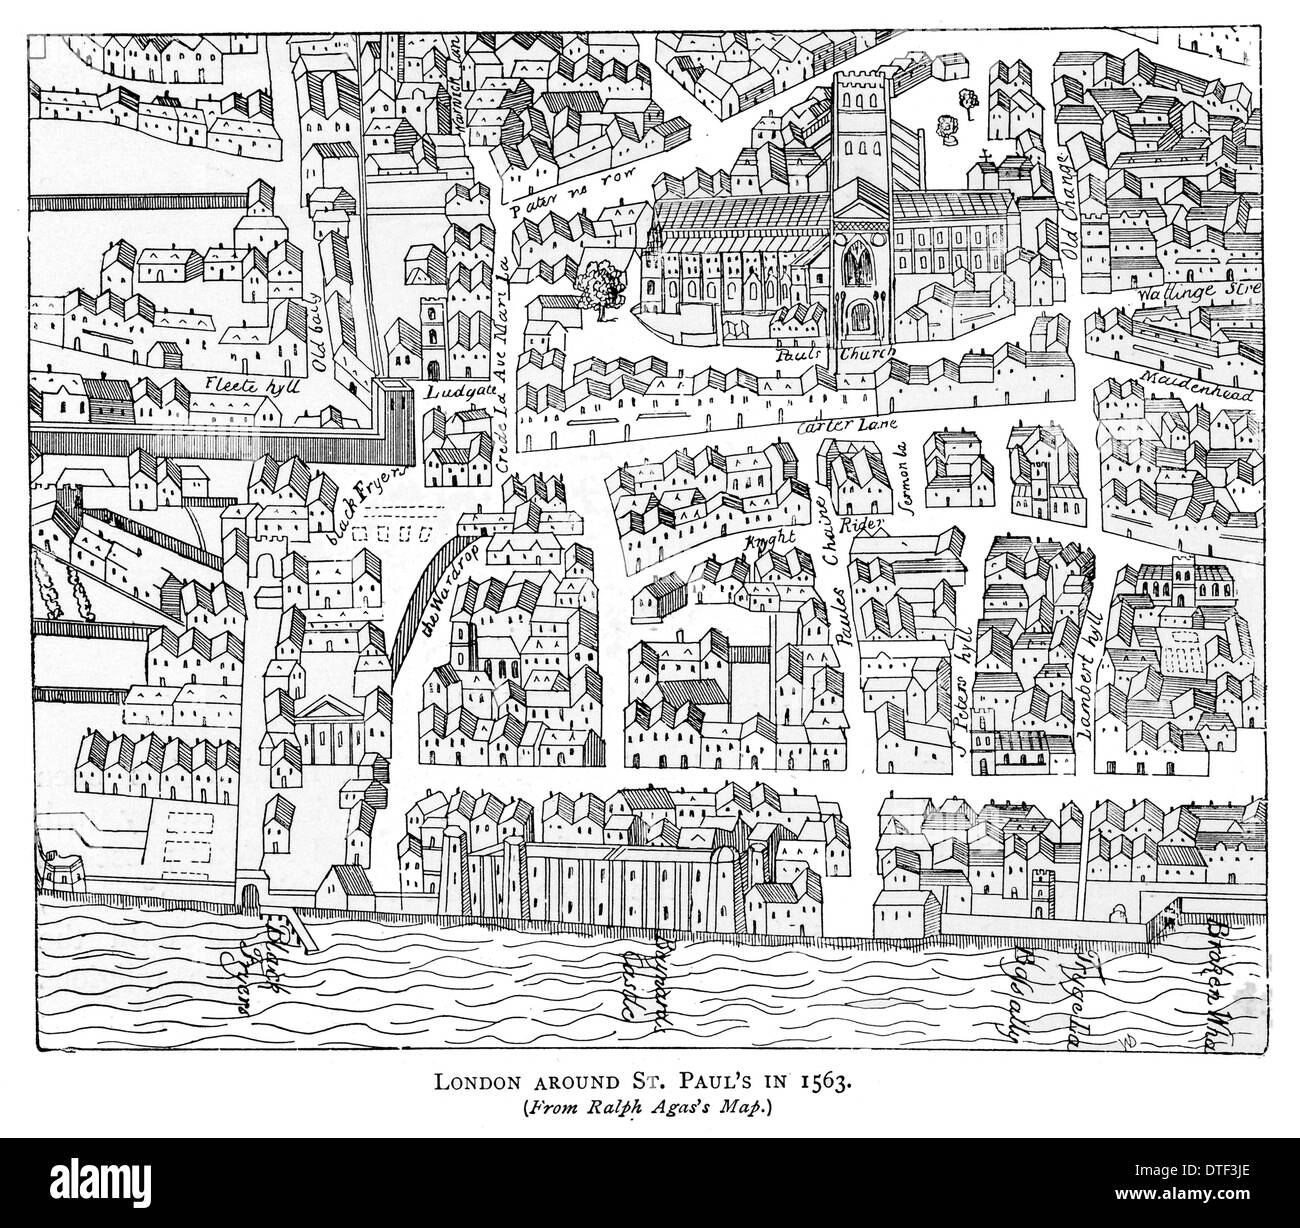 London around Saint Paul's in 1563. From Ralph Agas's map. - Stock Image